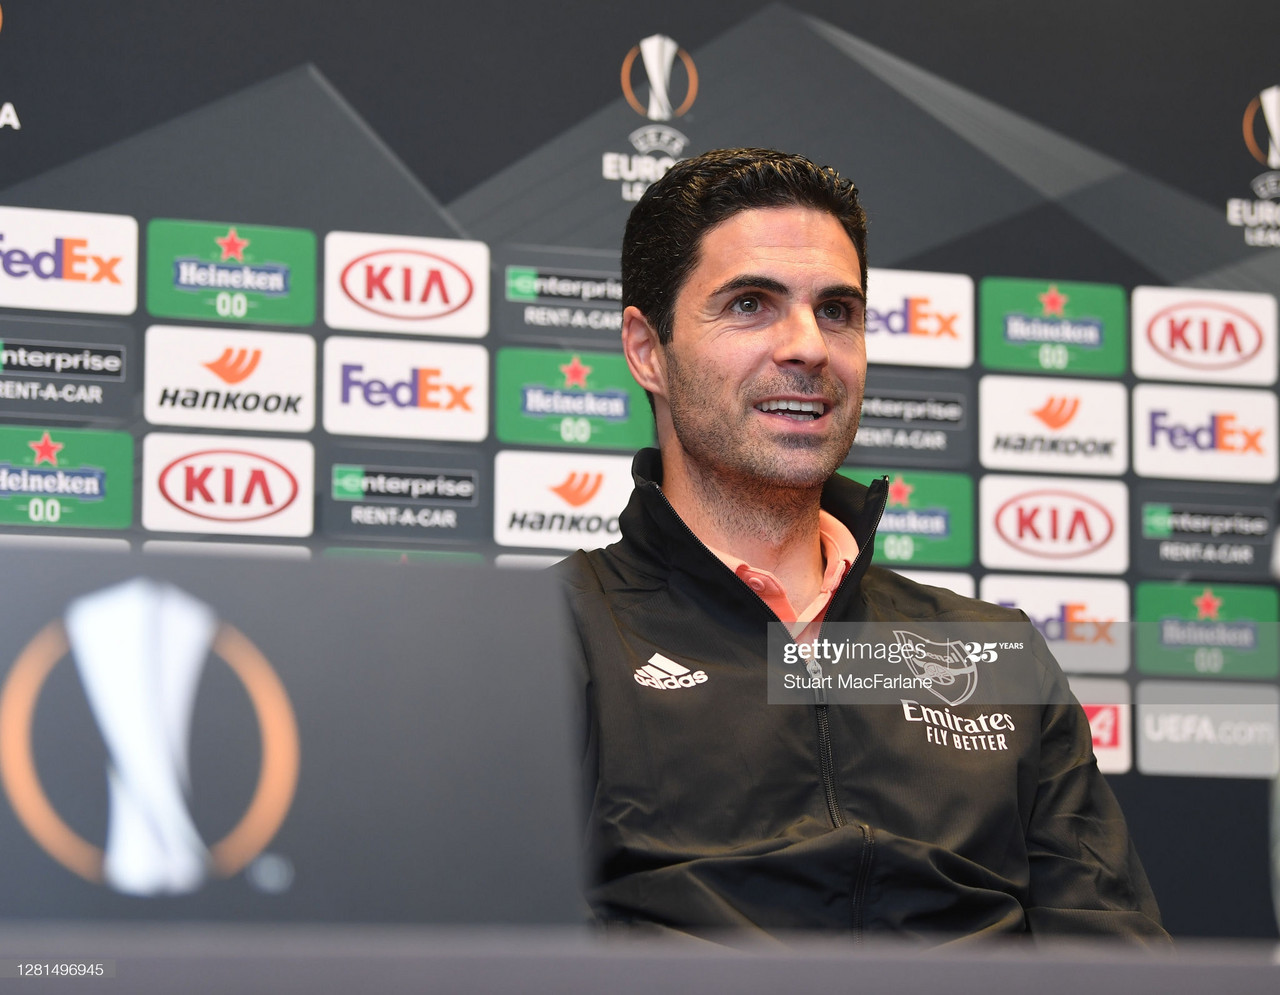 VIENNA, AUSTRIA - OCTOBER 21: Arsenal manager Mikel Arteta attends a press conference at the team hotel on October 21, 2020 in Vienna, Austria. (Photo by Stuart MacFarlane/Arsenal FC via Getty Images)